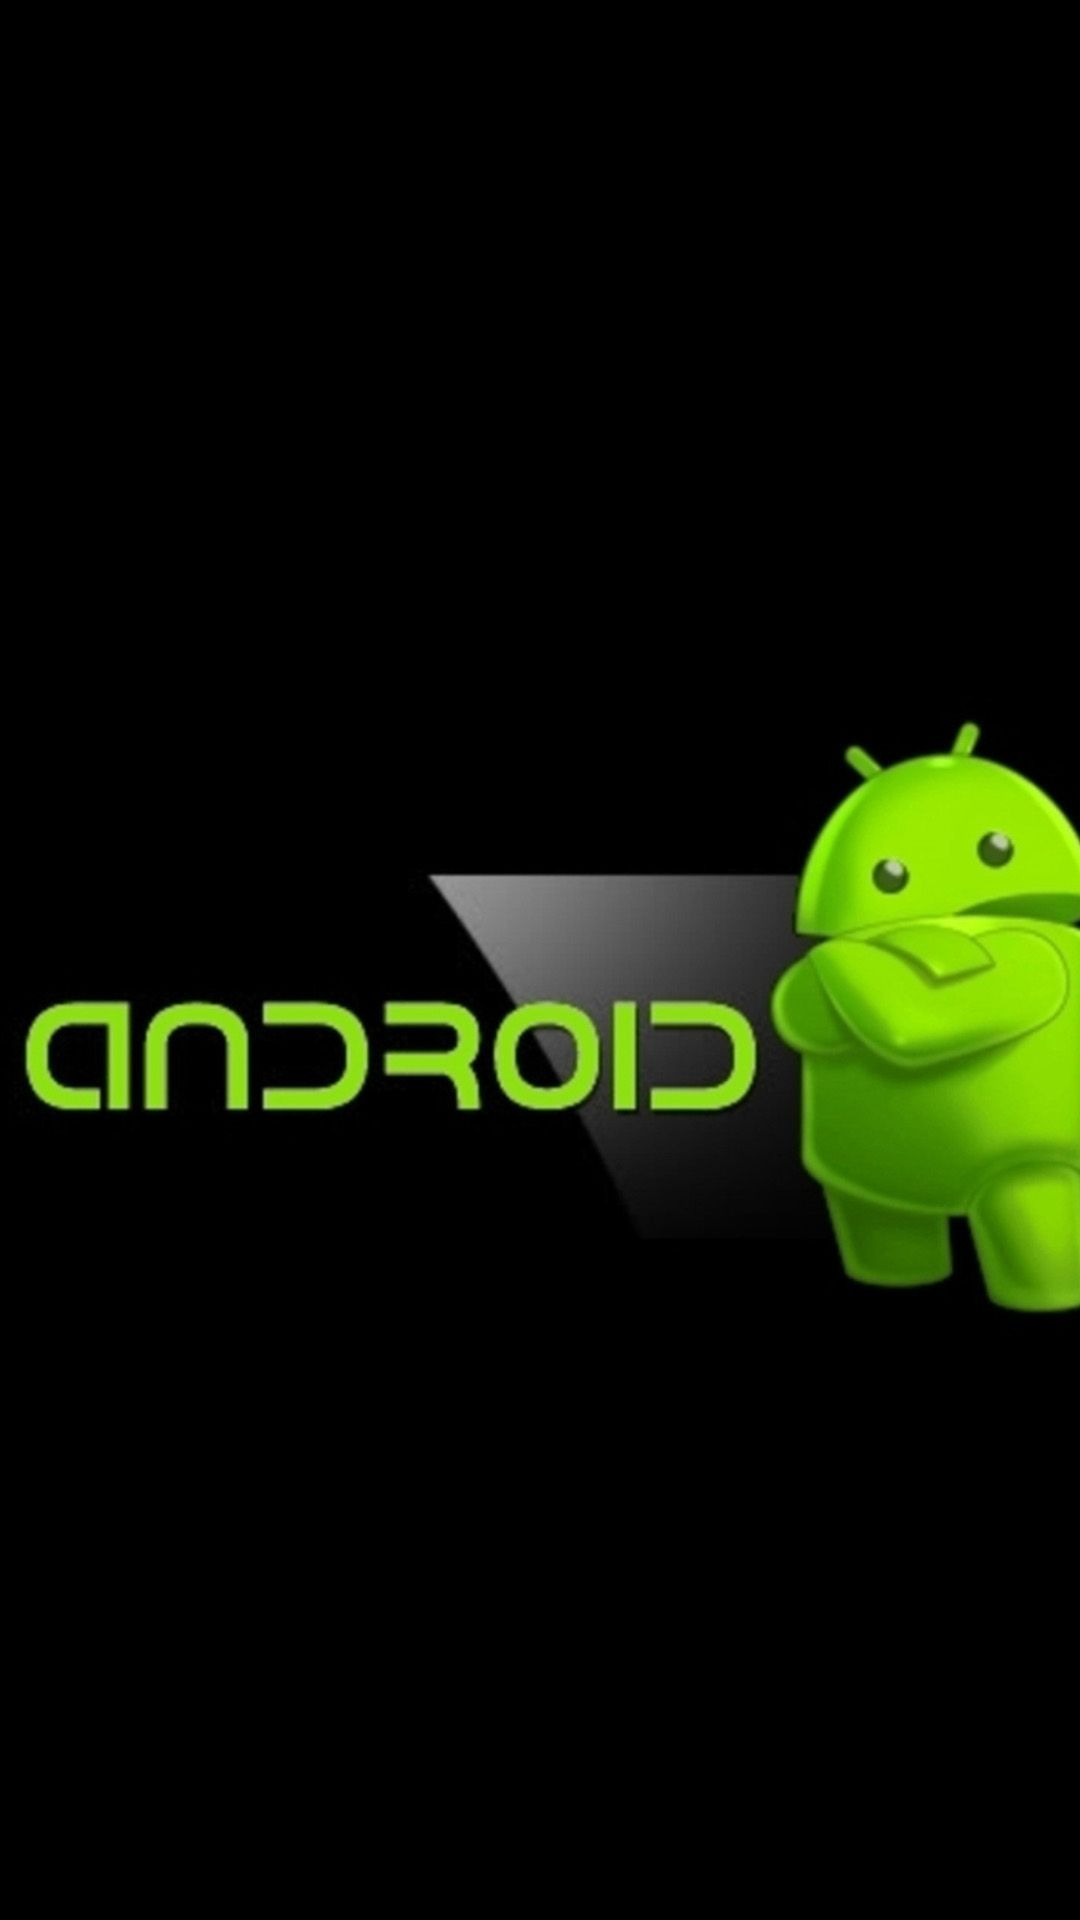 android logo wallpaper Google zoeken Android wallpaper